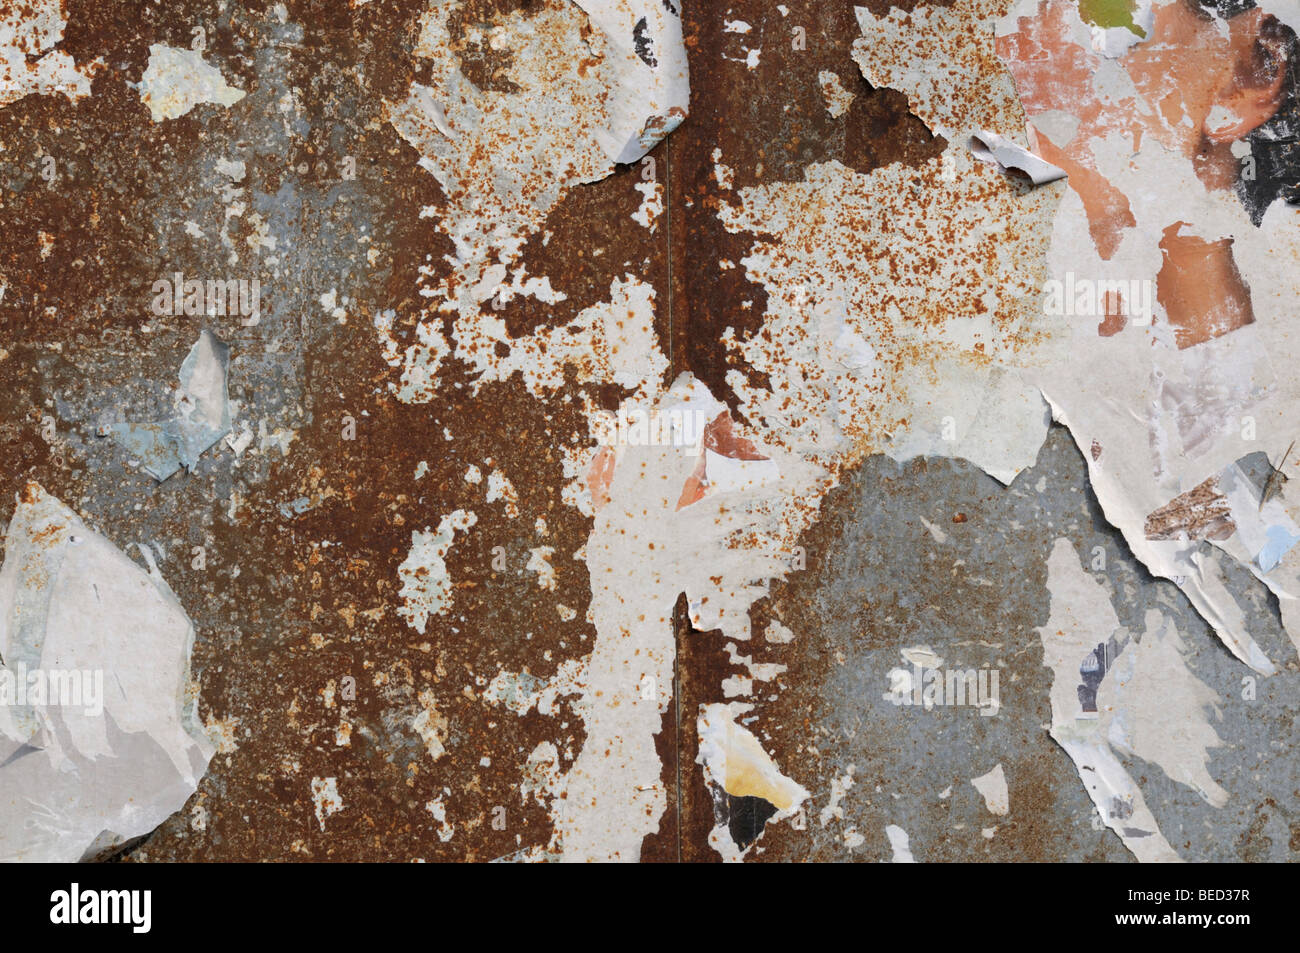 Corroded metal surface with remains of posters Stock Photo